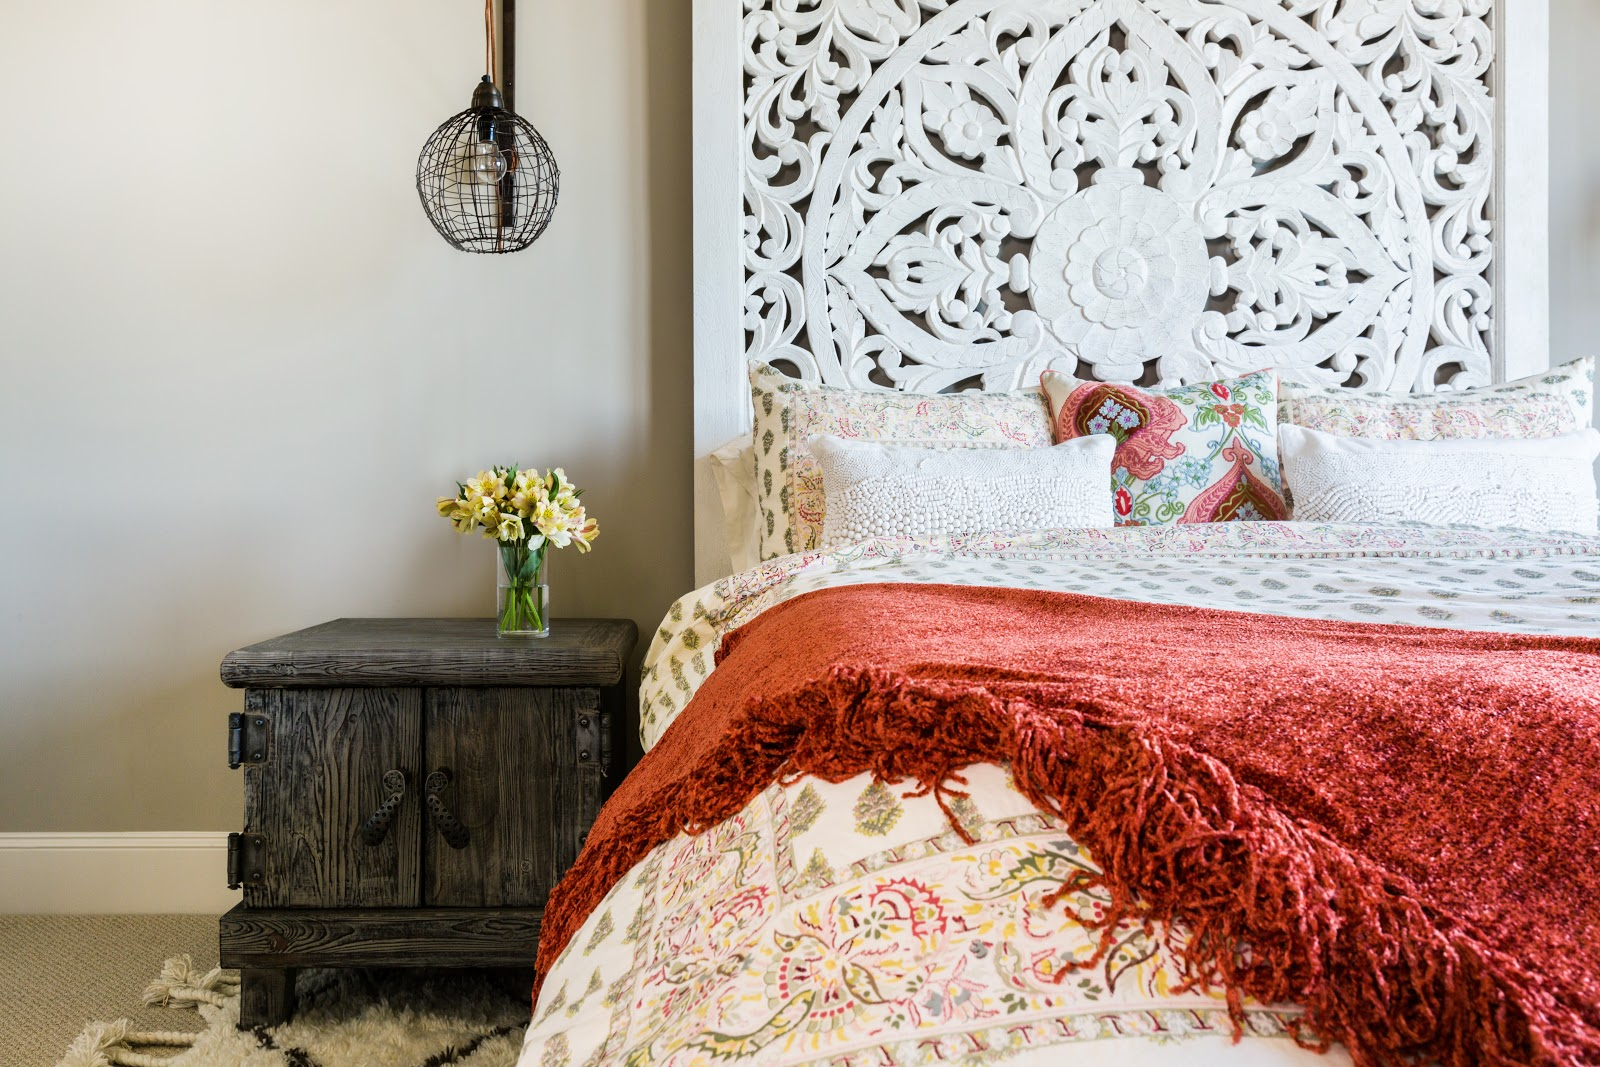 Intricate Anthropologie wooden headboard with India vibe - Dbh-biz.info Interior Design